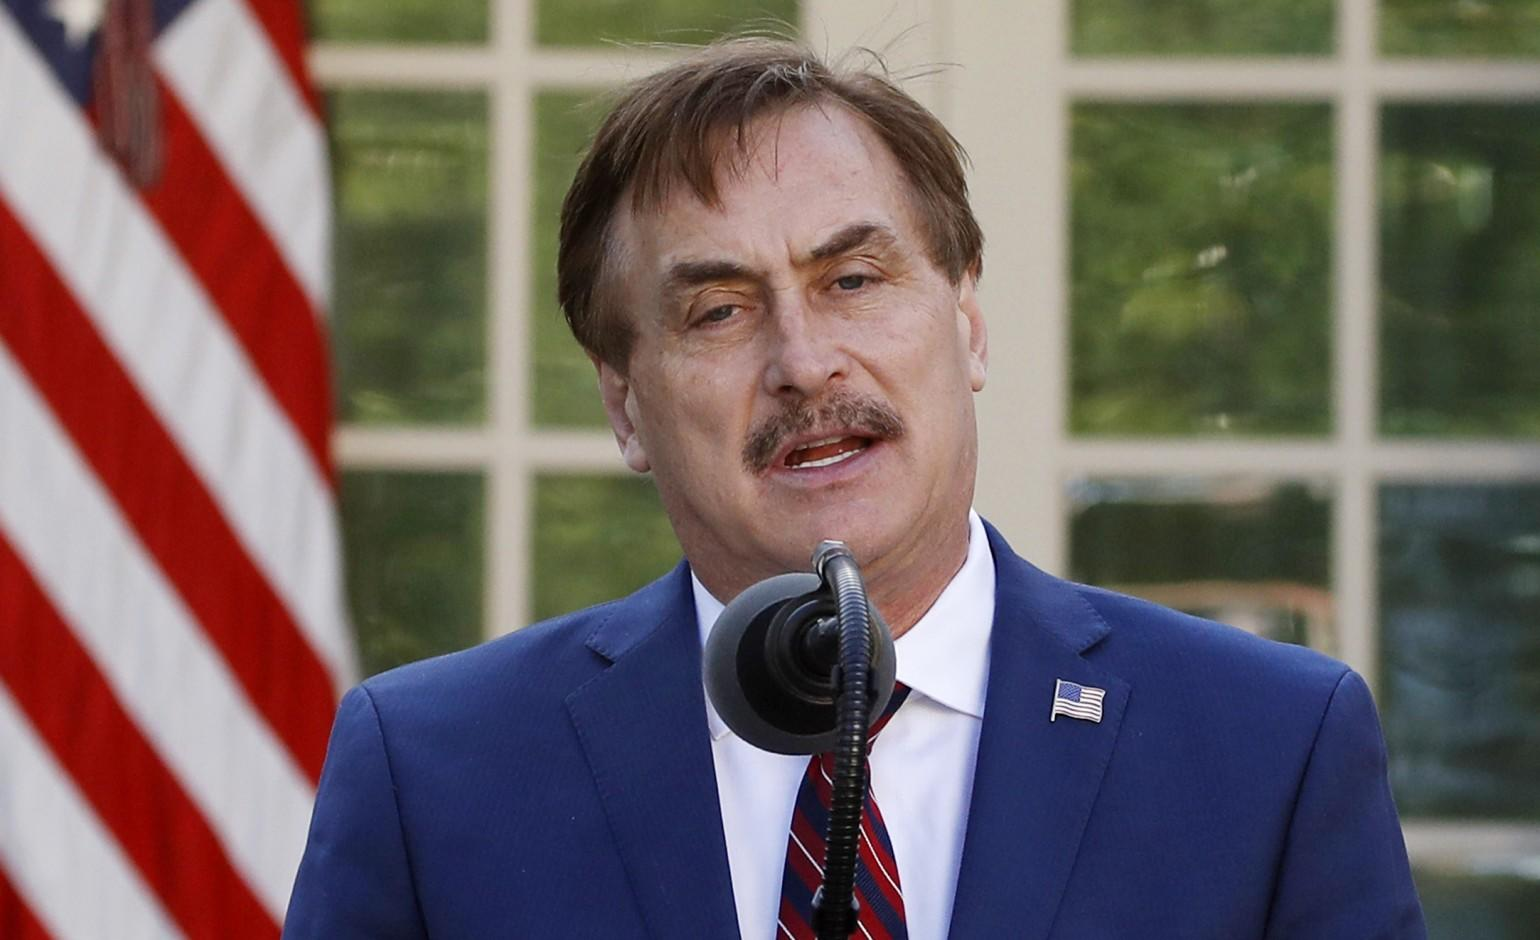 Mike Lindell claims he was 'attacked' at hotel after cyber symposium